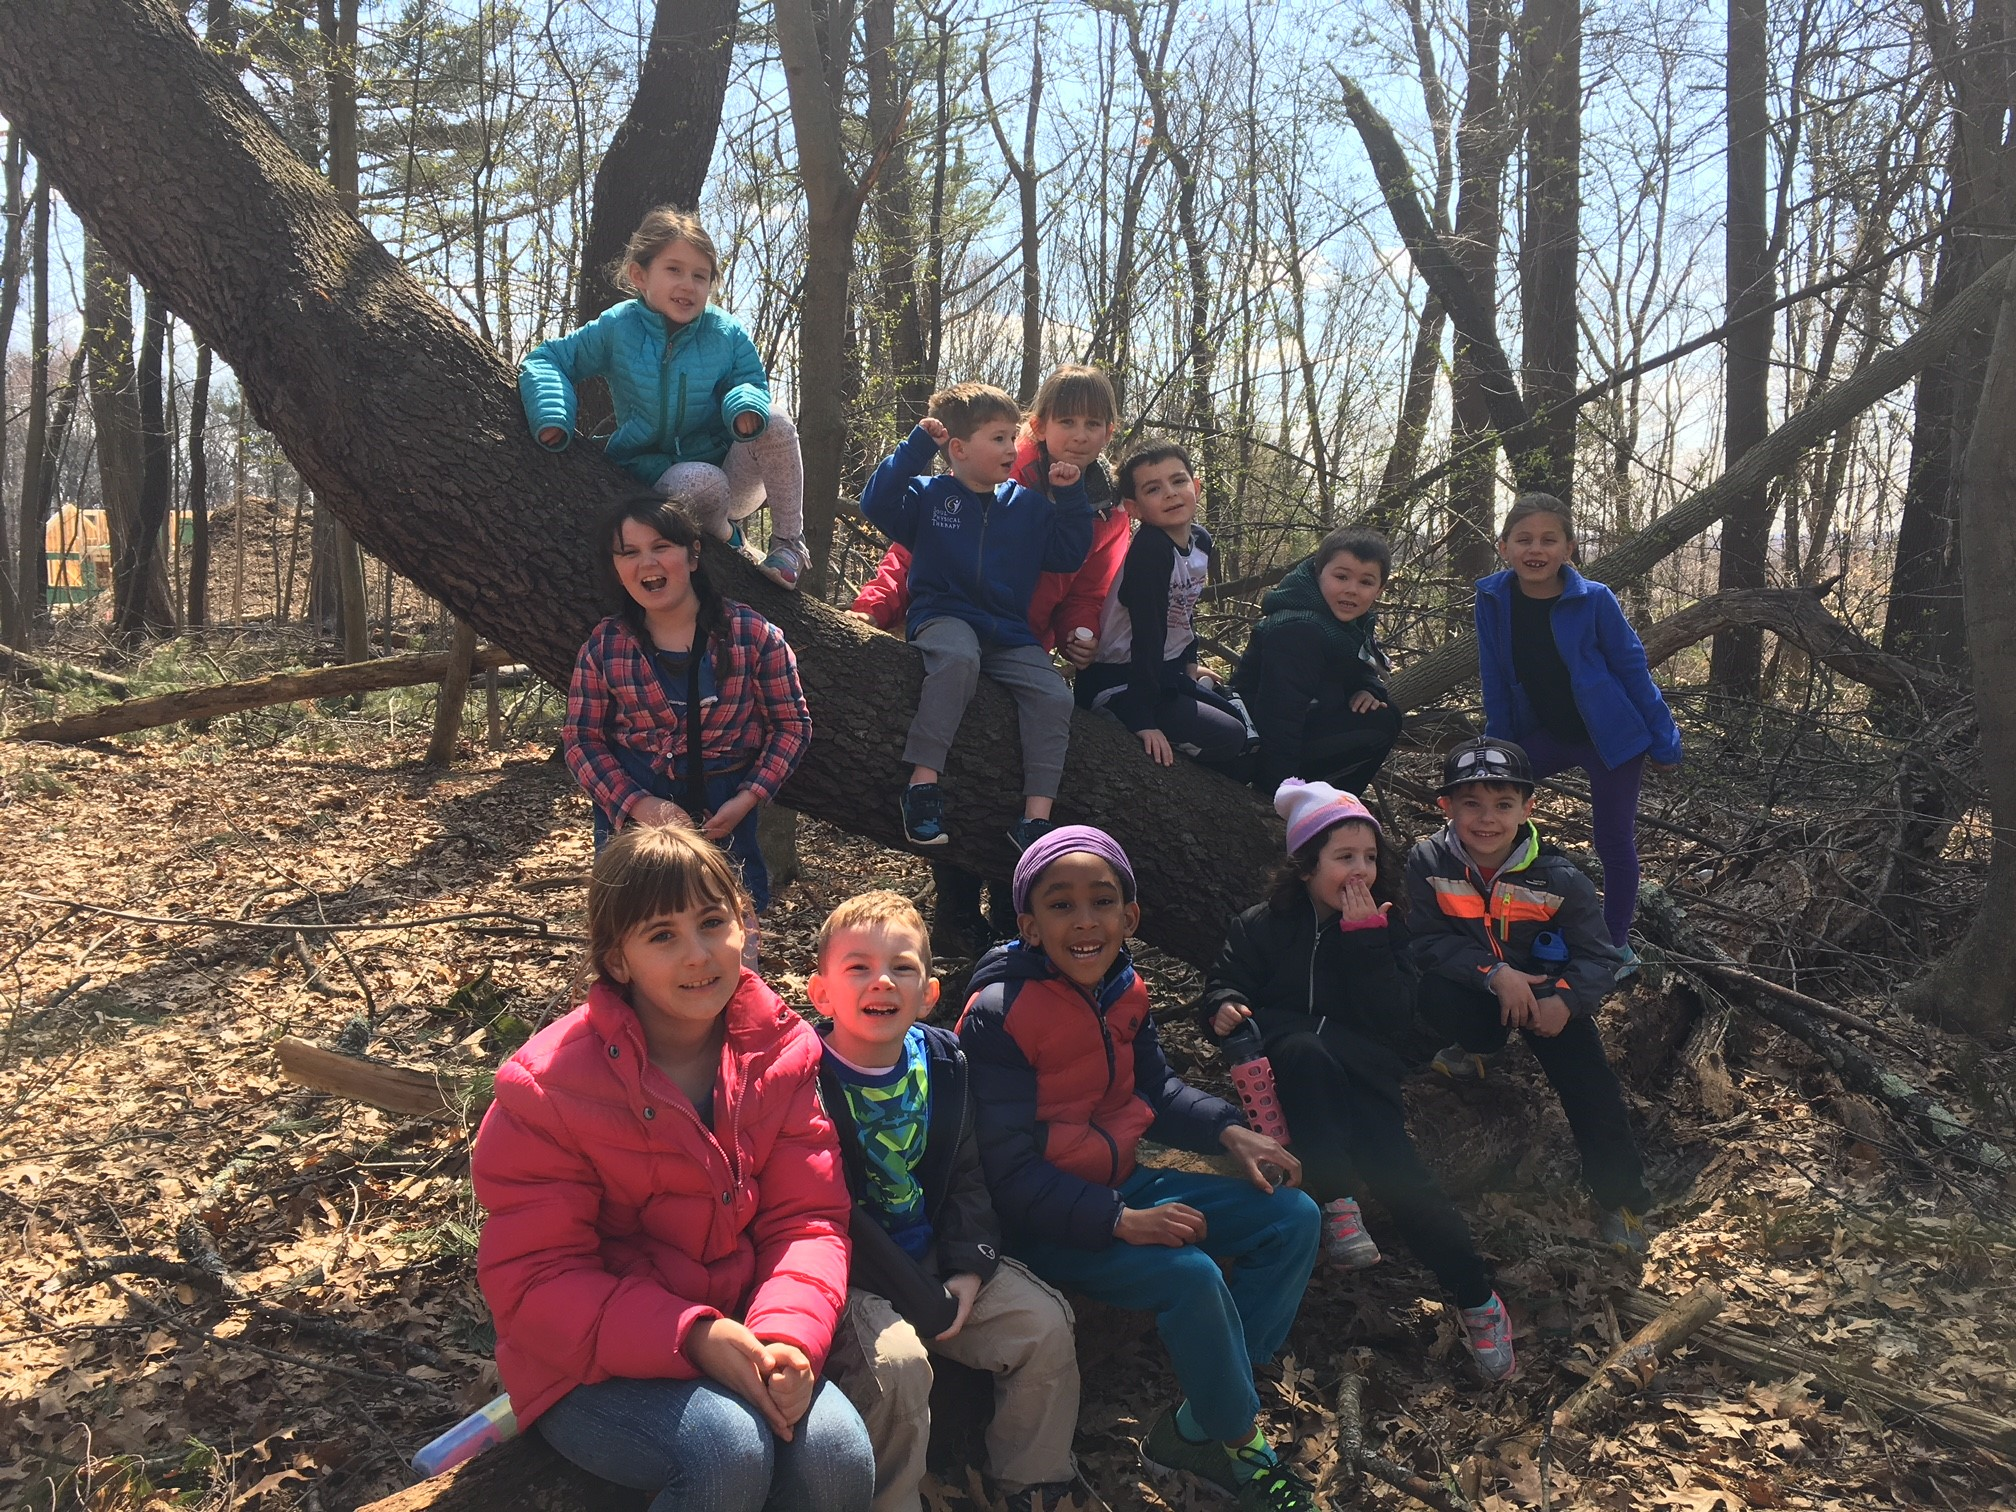 Group of kids sitting on a sloping tree trunk and on a log in the woods